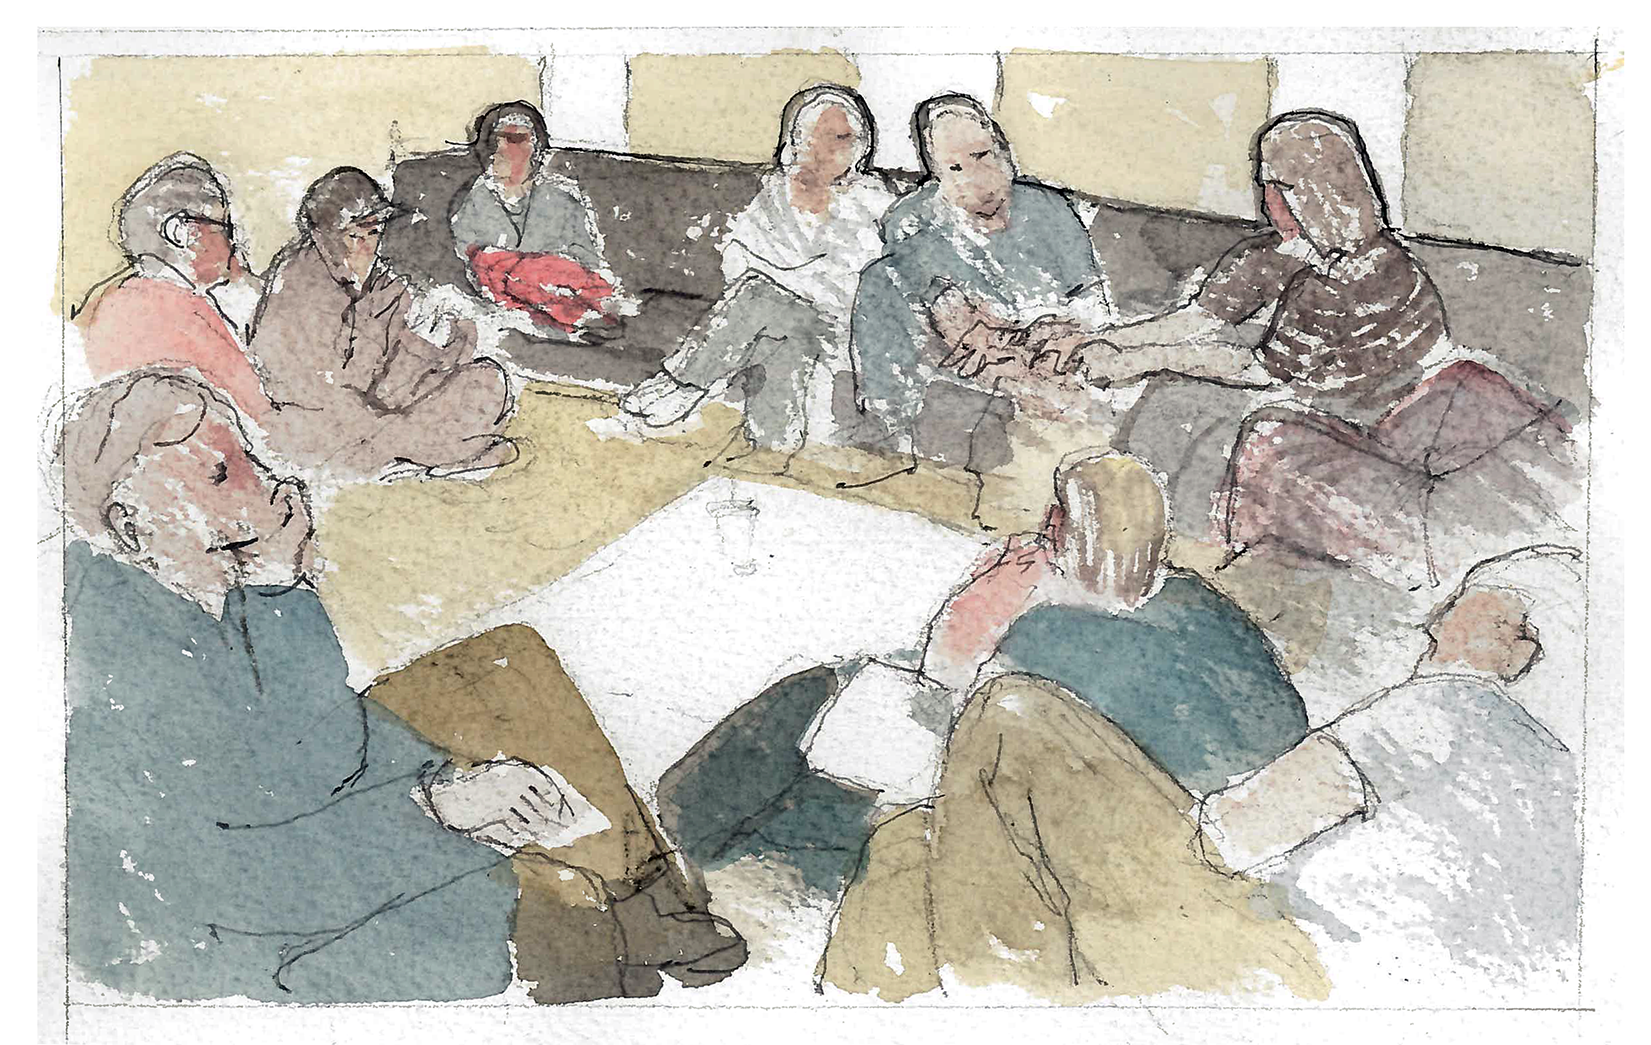 Watercolor Dealing With Church Conflict - Building Projects and Mission Statements